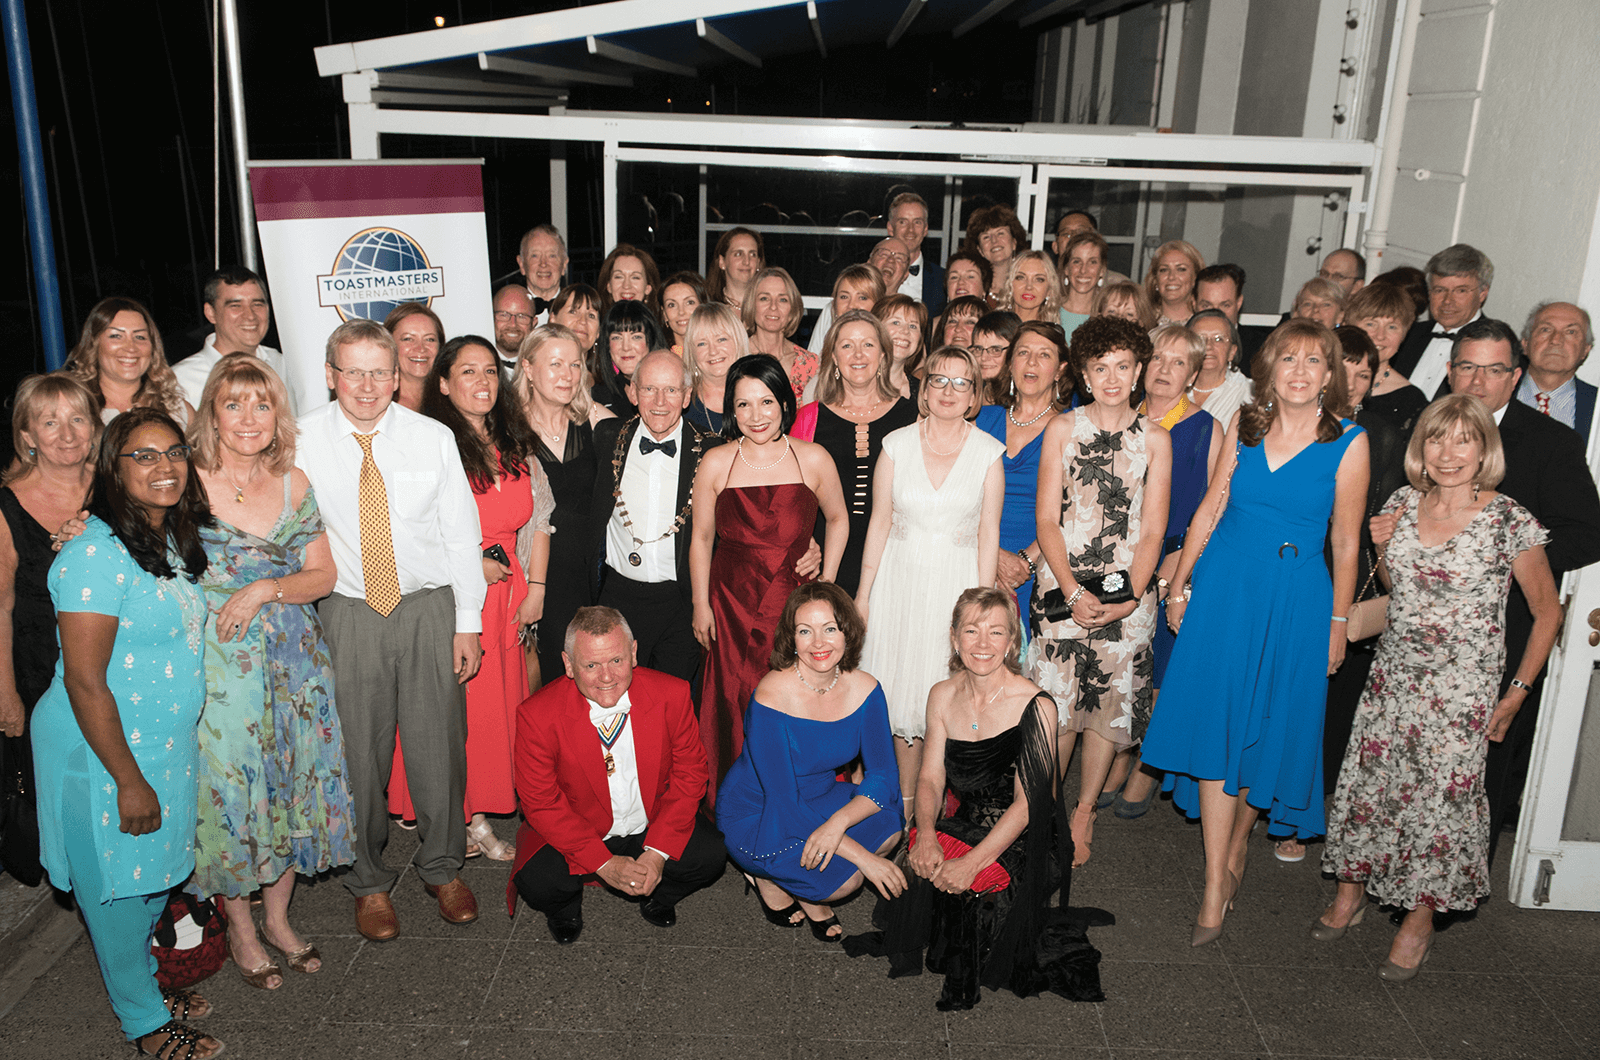 Toastmasters members pose in Dublin, Ireland